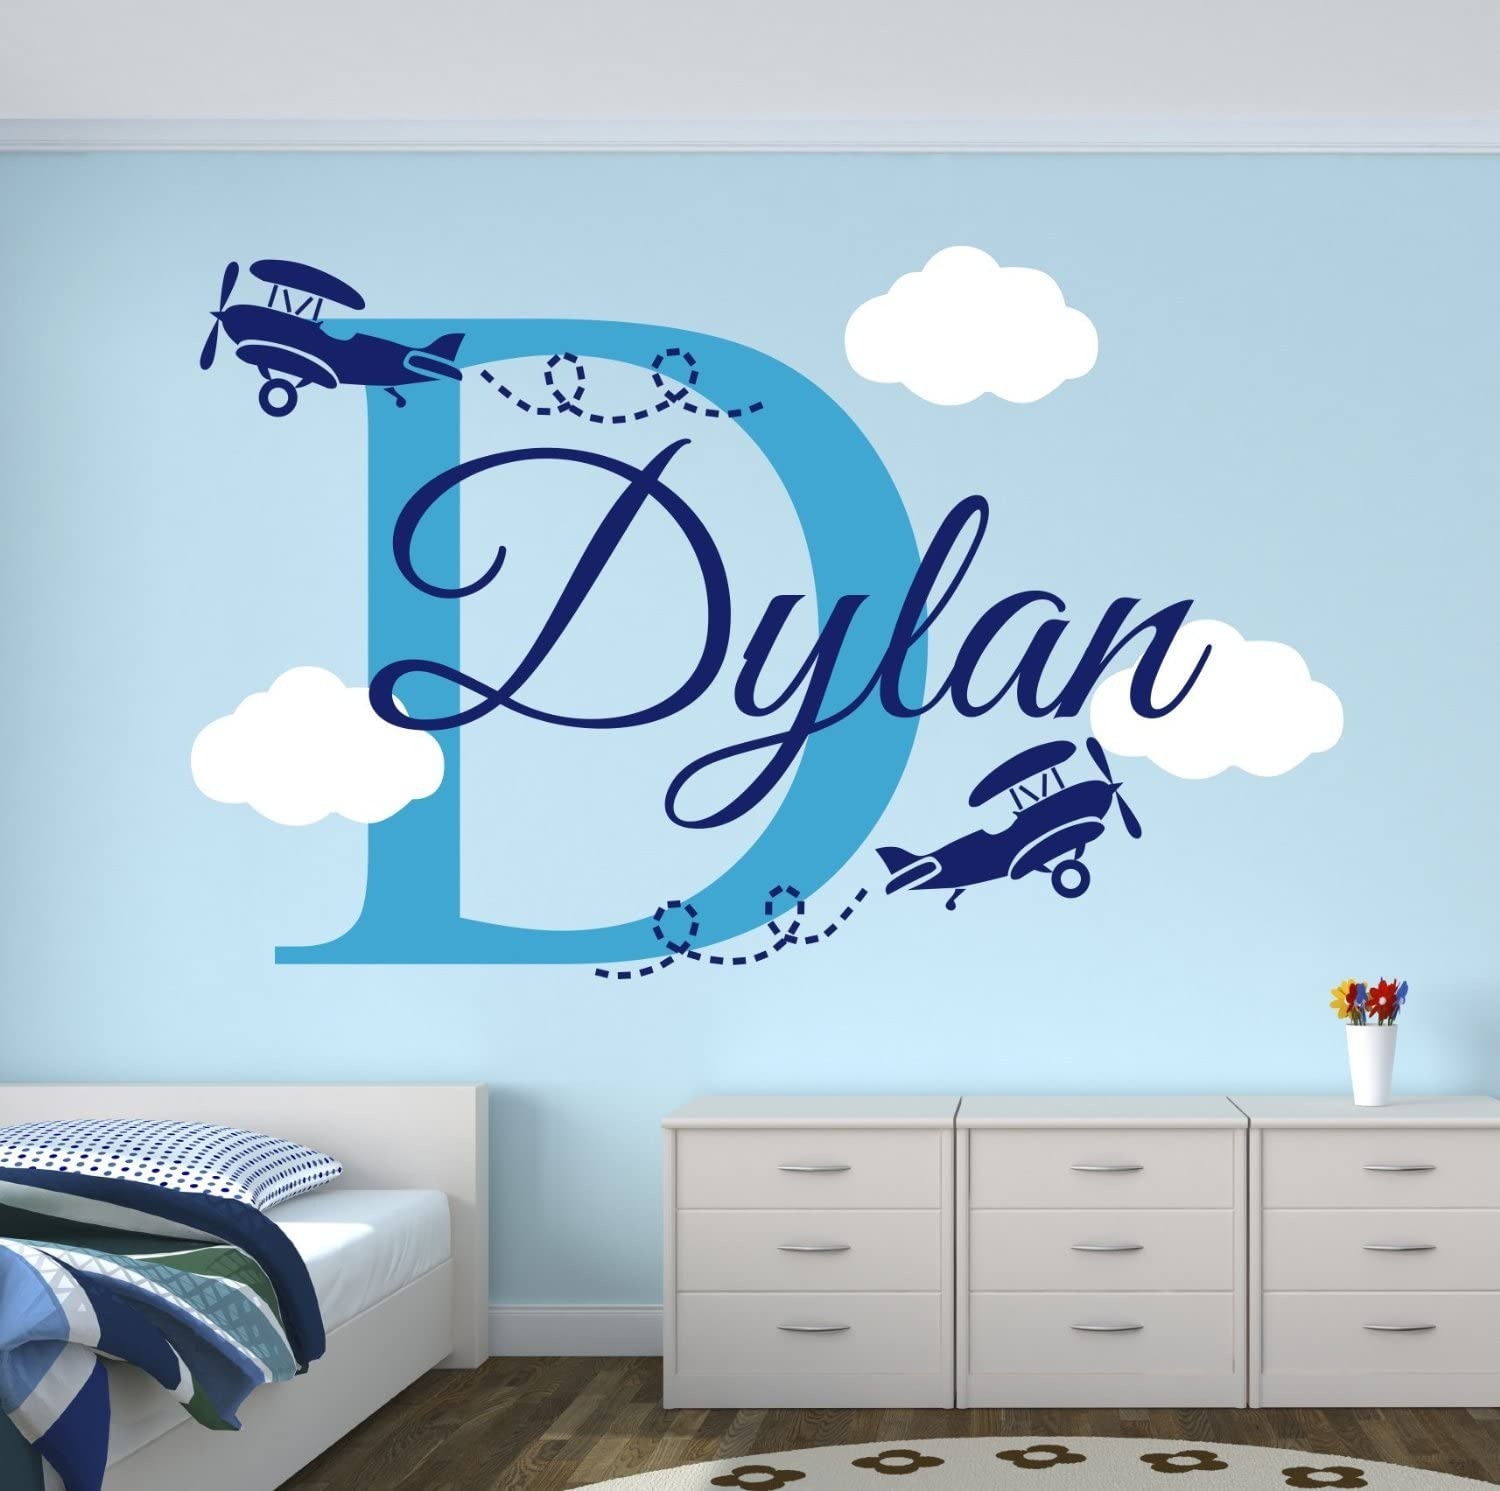 Personalized Name Airplanes Wall Decal - Boy Name Wall Decal Kids Room Decor - Clouds Wall Decal Nursery Decor (40Wx20H)